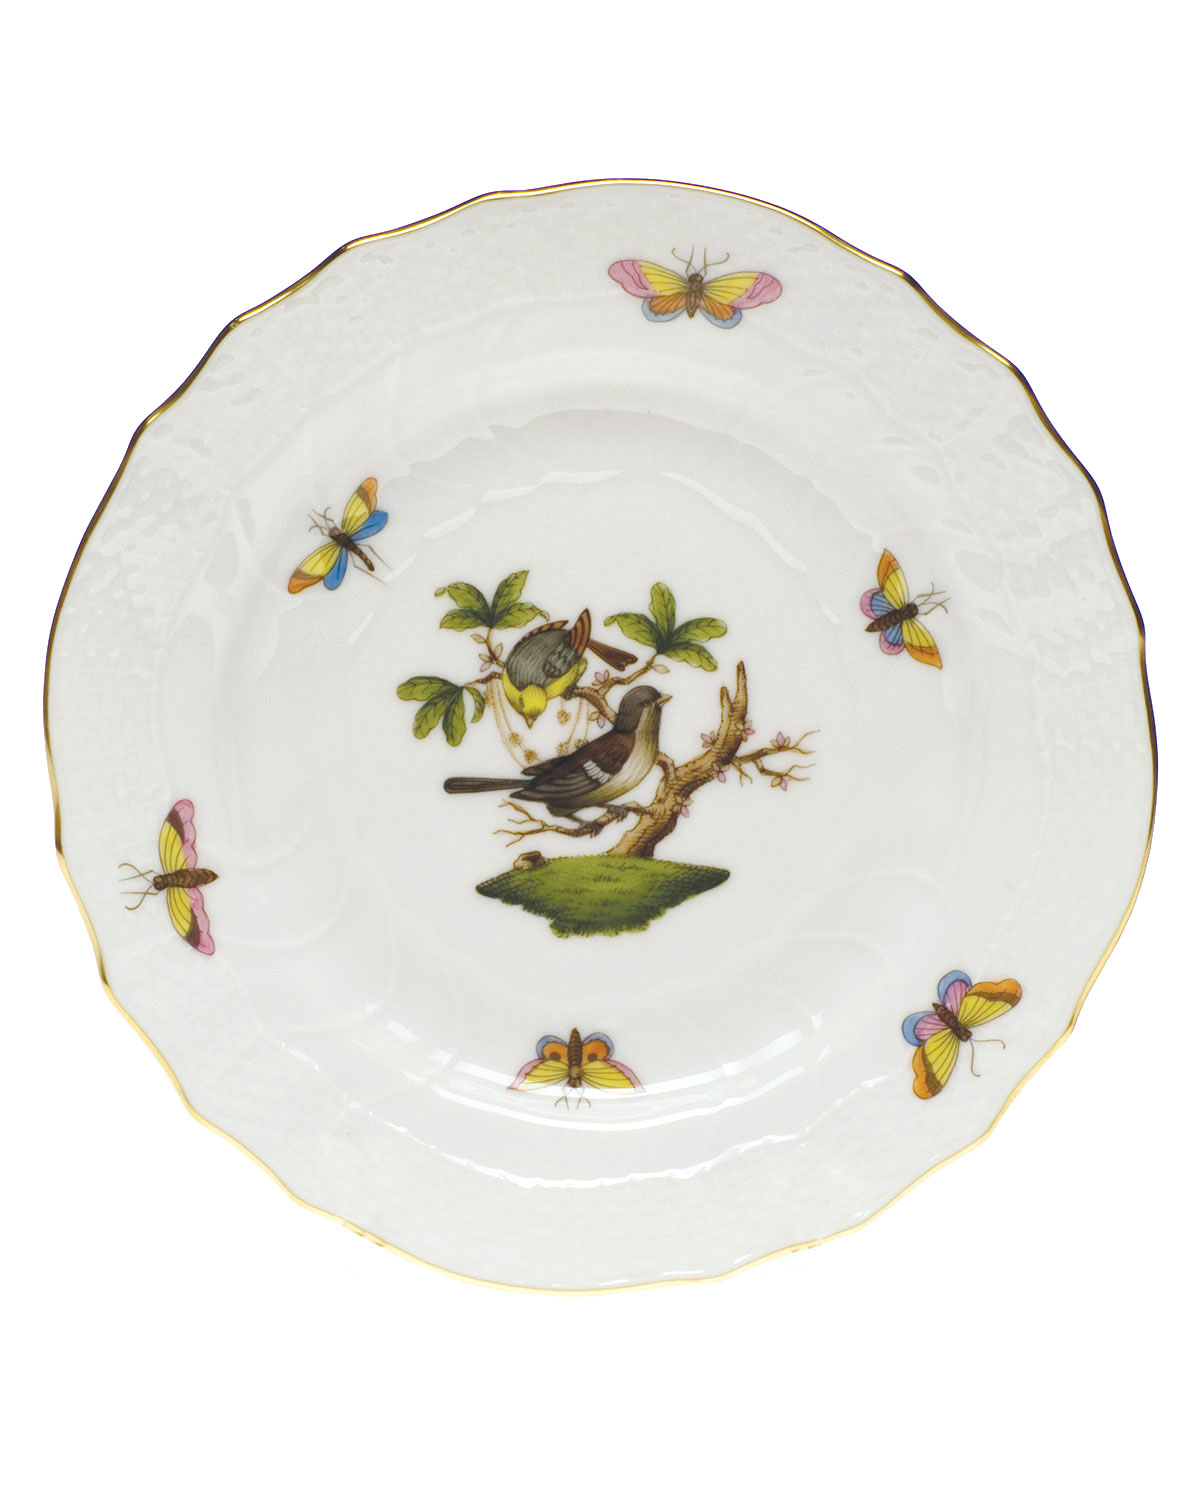 Herend ROTHSCHILD BIRD BREAD & BUTTER PLATE #1